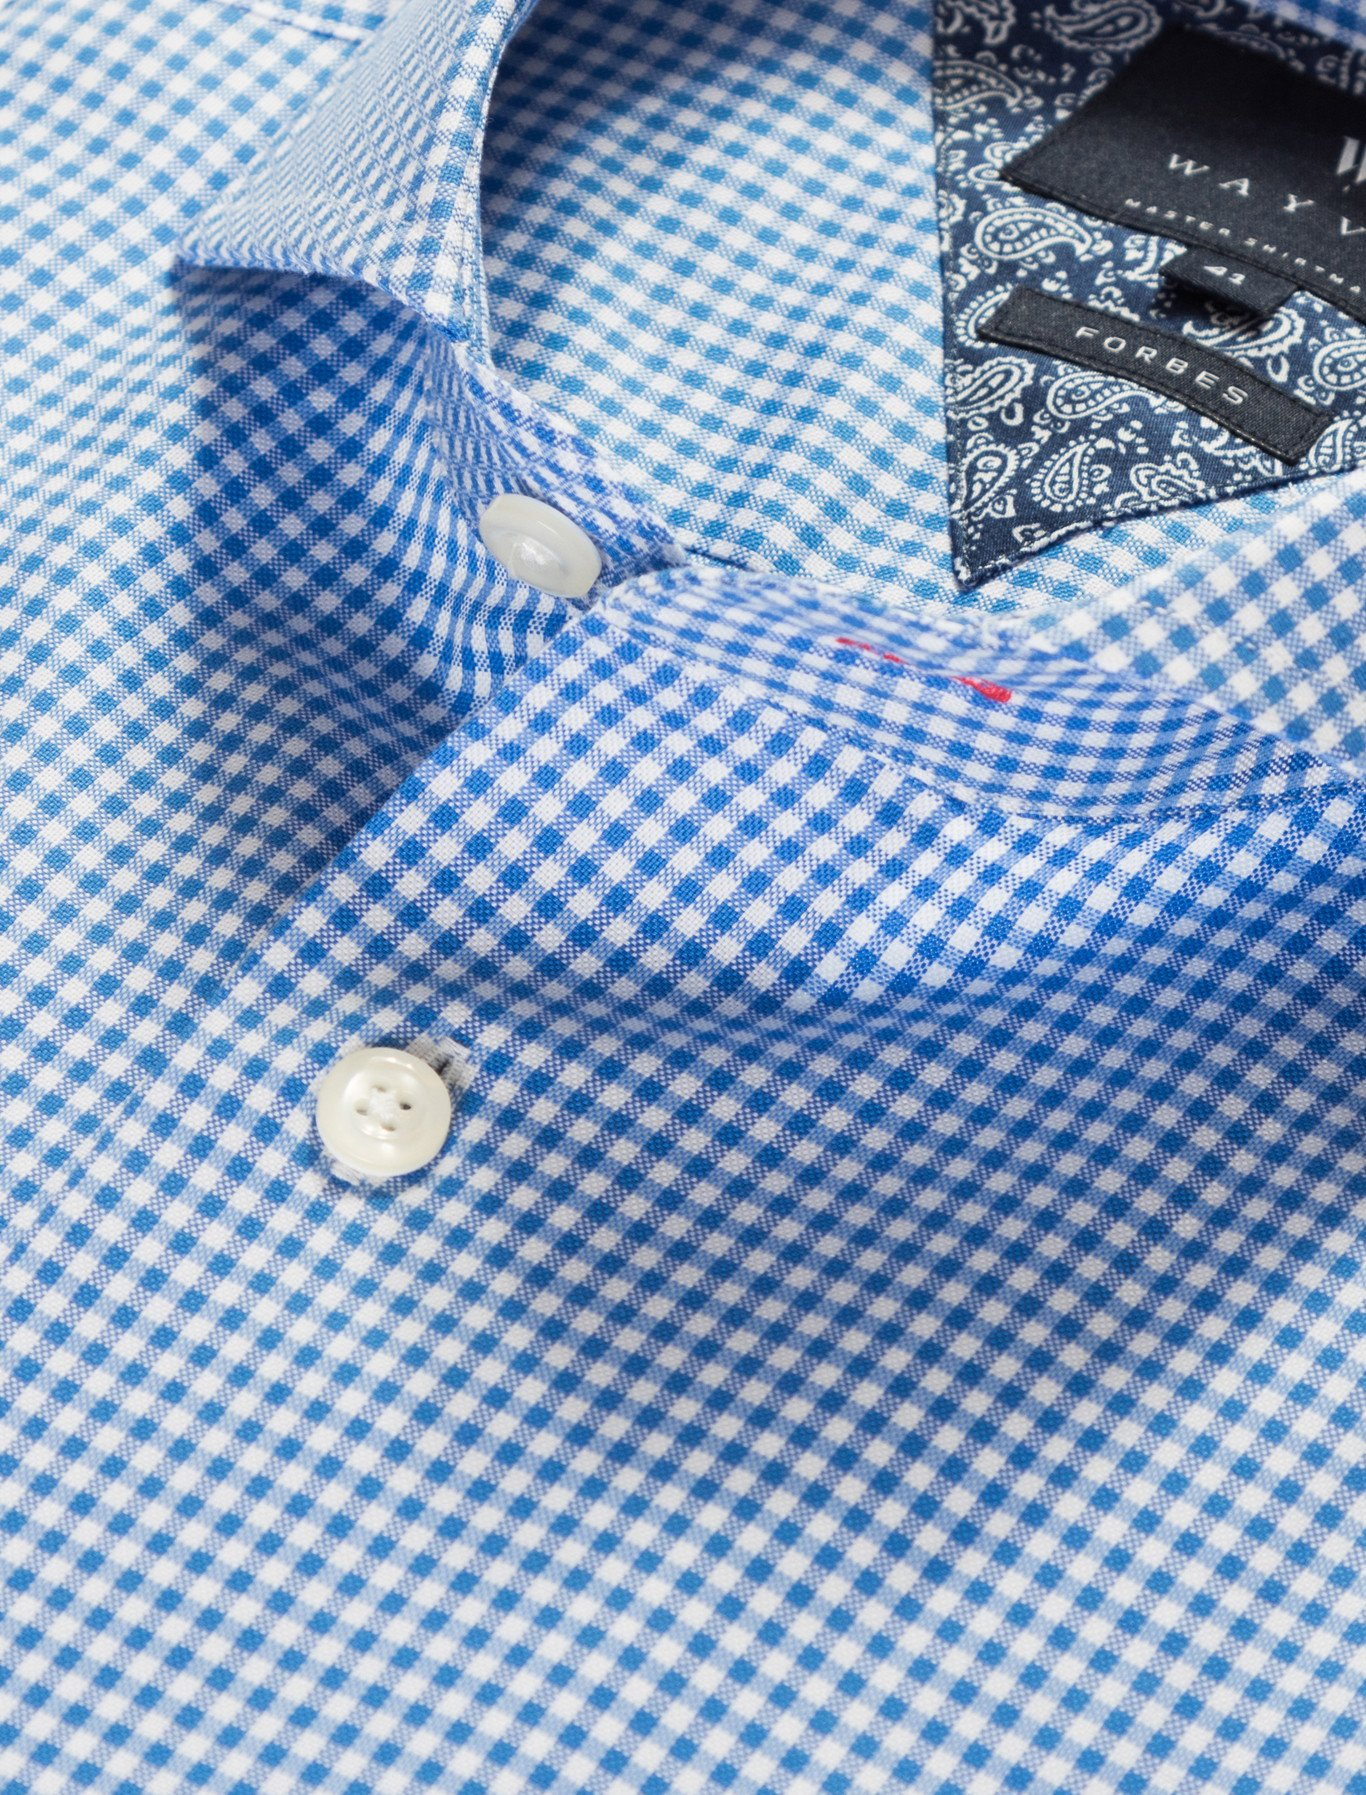 Band Collar Dress Shirts | Cutaway Collar | Extreme Cutaway Shirt